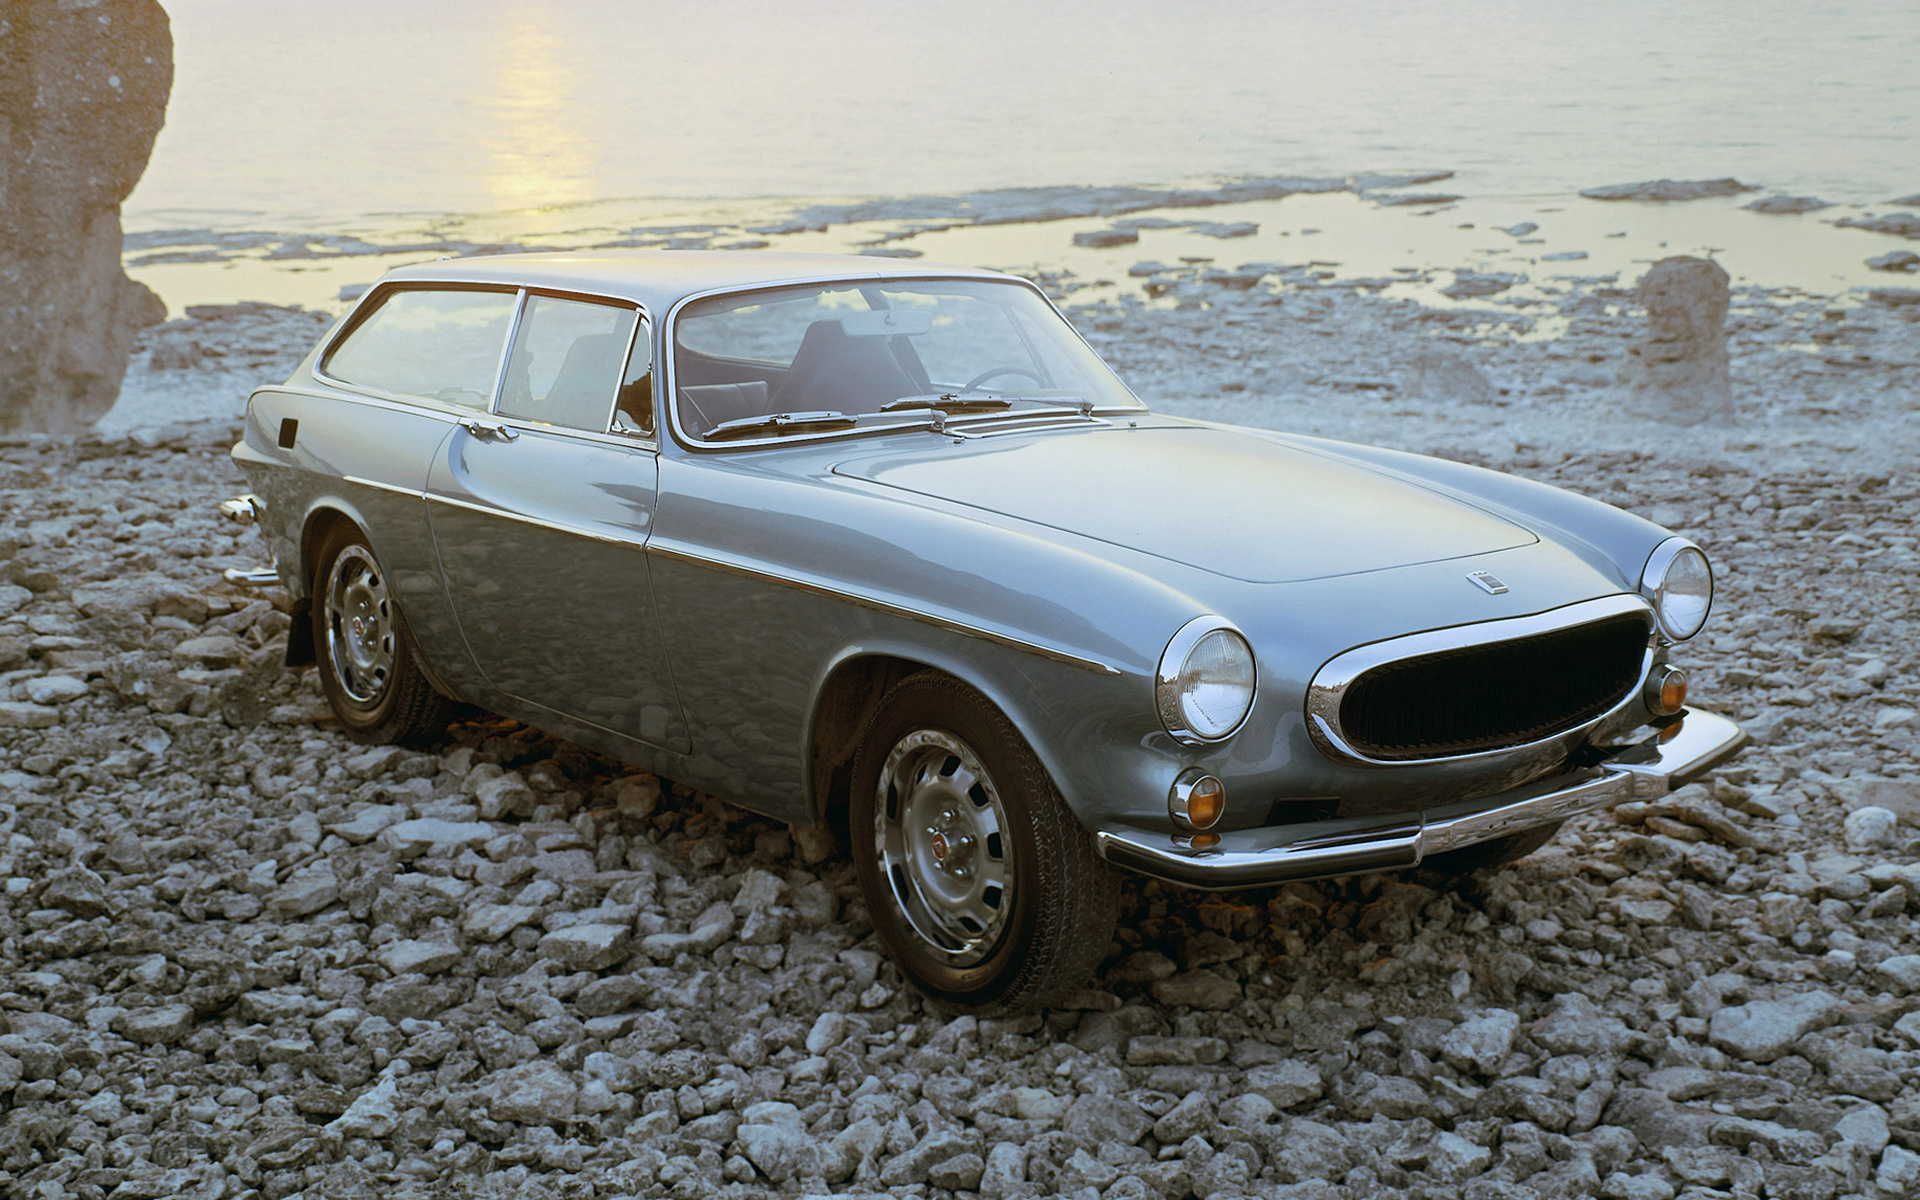 1972 Volvo 1800 ES - Wallpapers and HD Images | Car Pixel